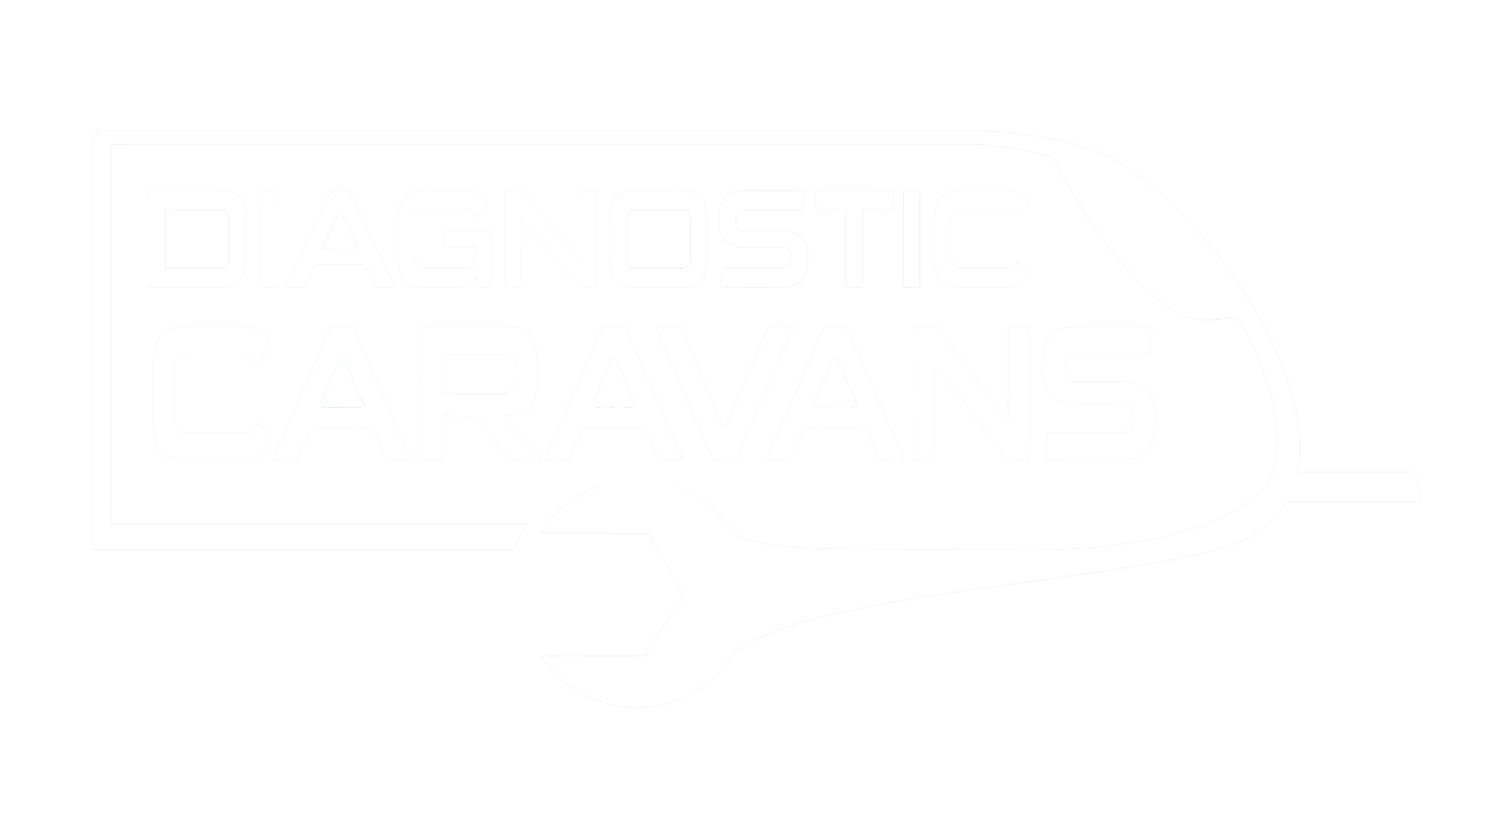 DIAGNOSTIC CARAVANS